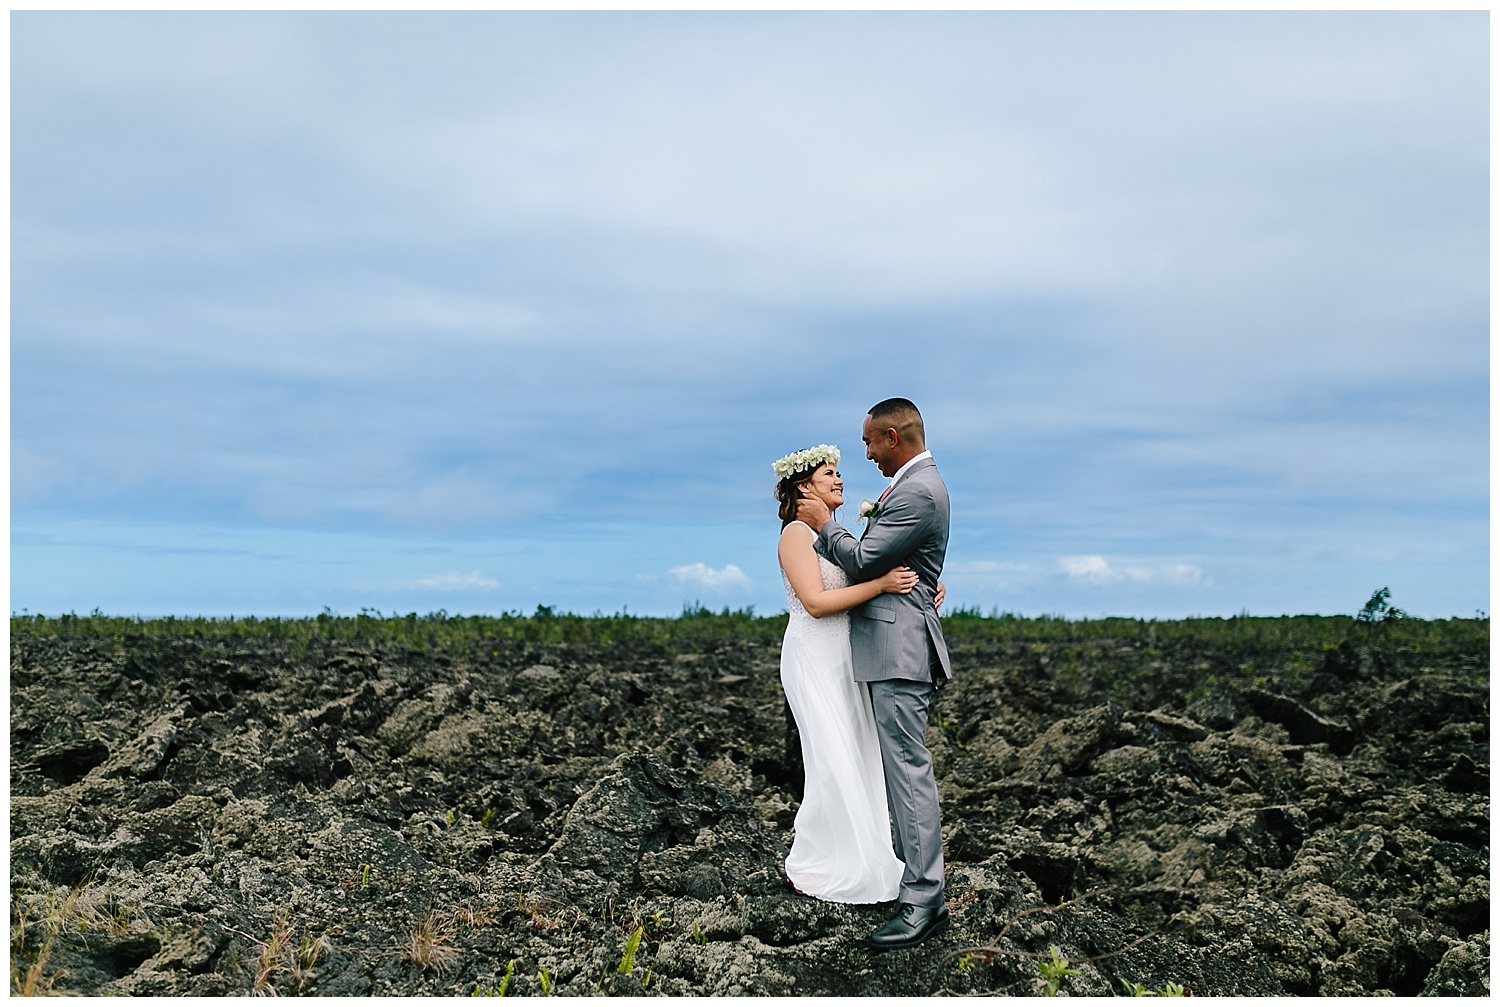 Lava field wedding